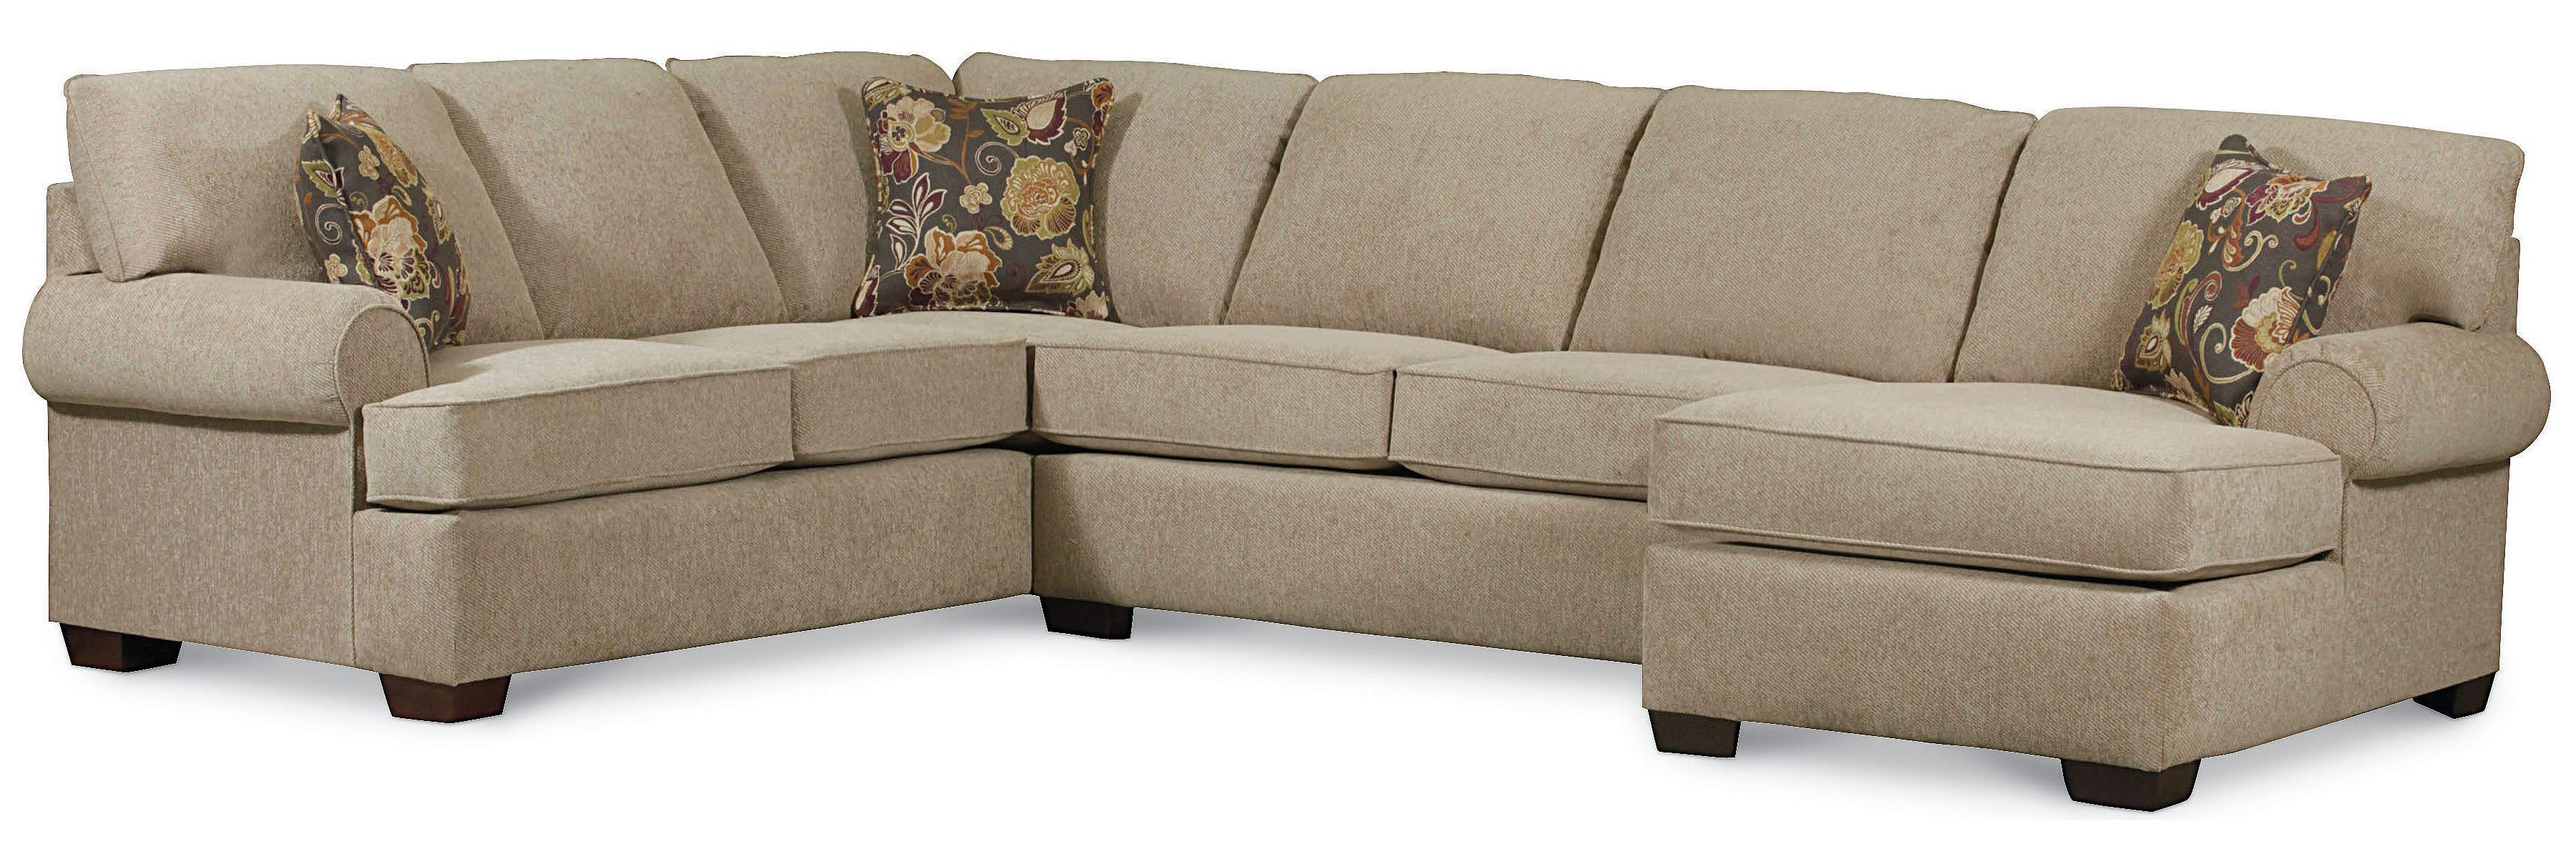 Lane sectional sofa lane megan 3 piece sectional sofa for Lane sectional sofa with recliner